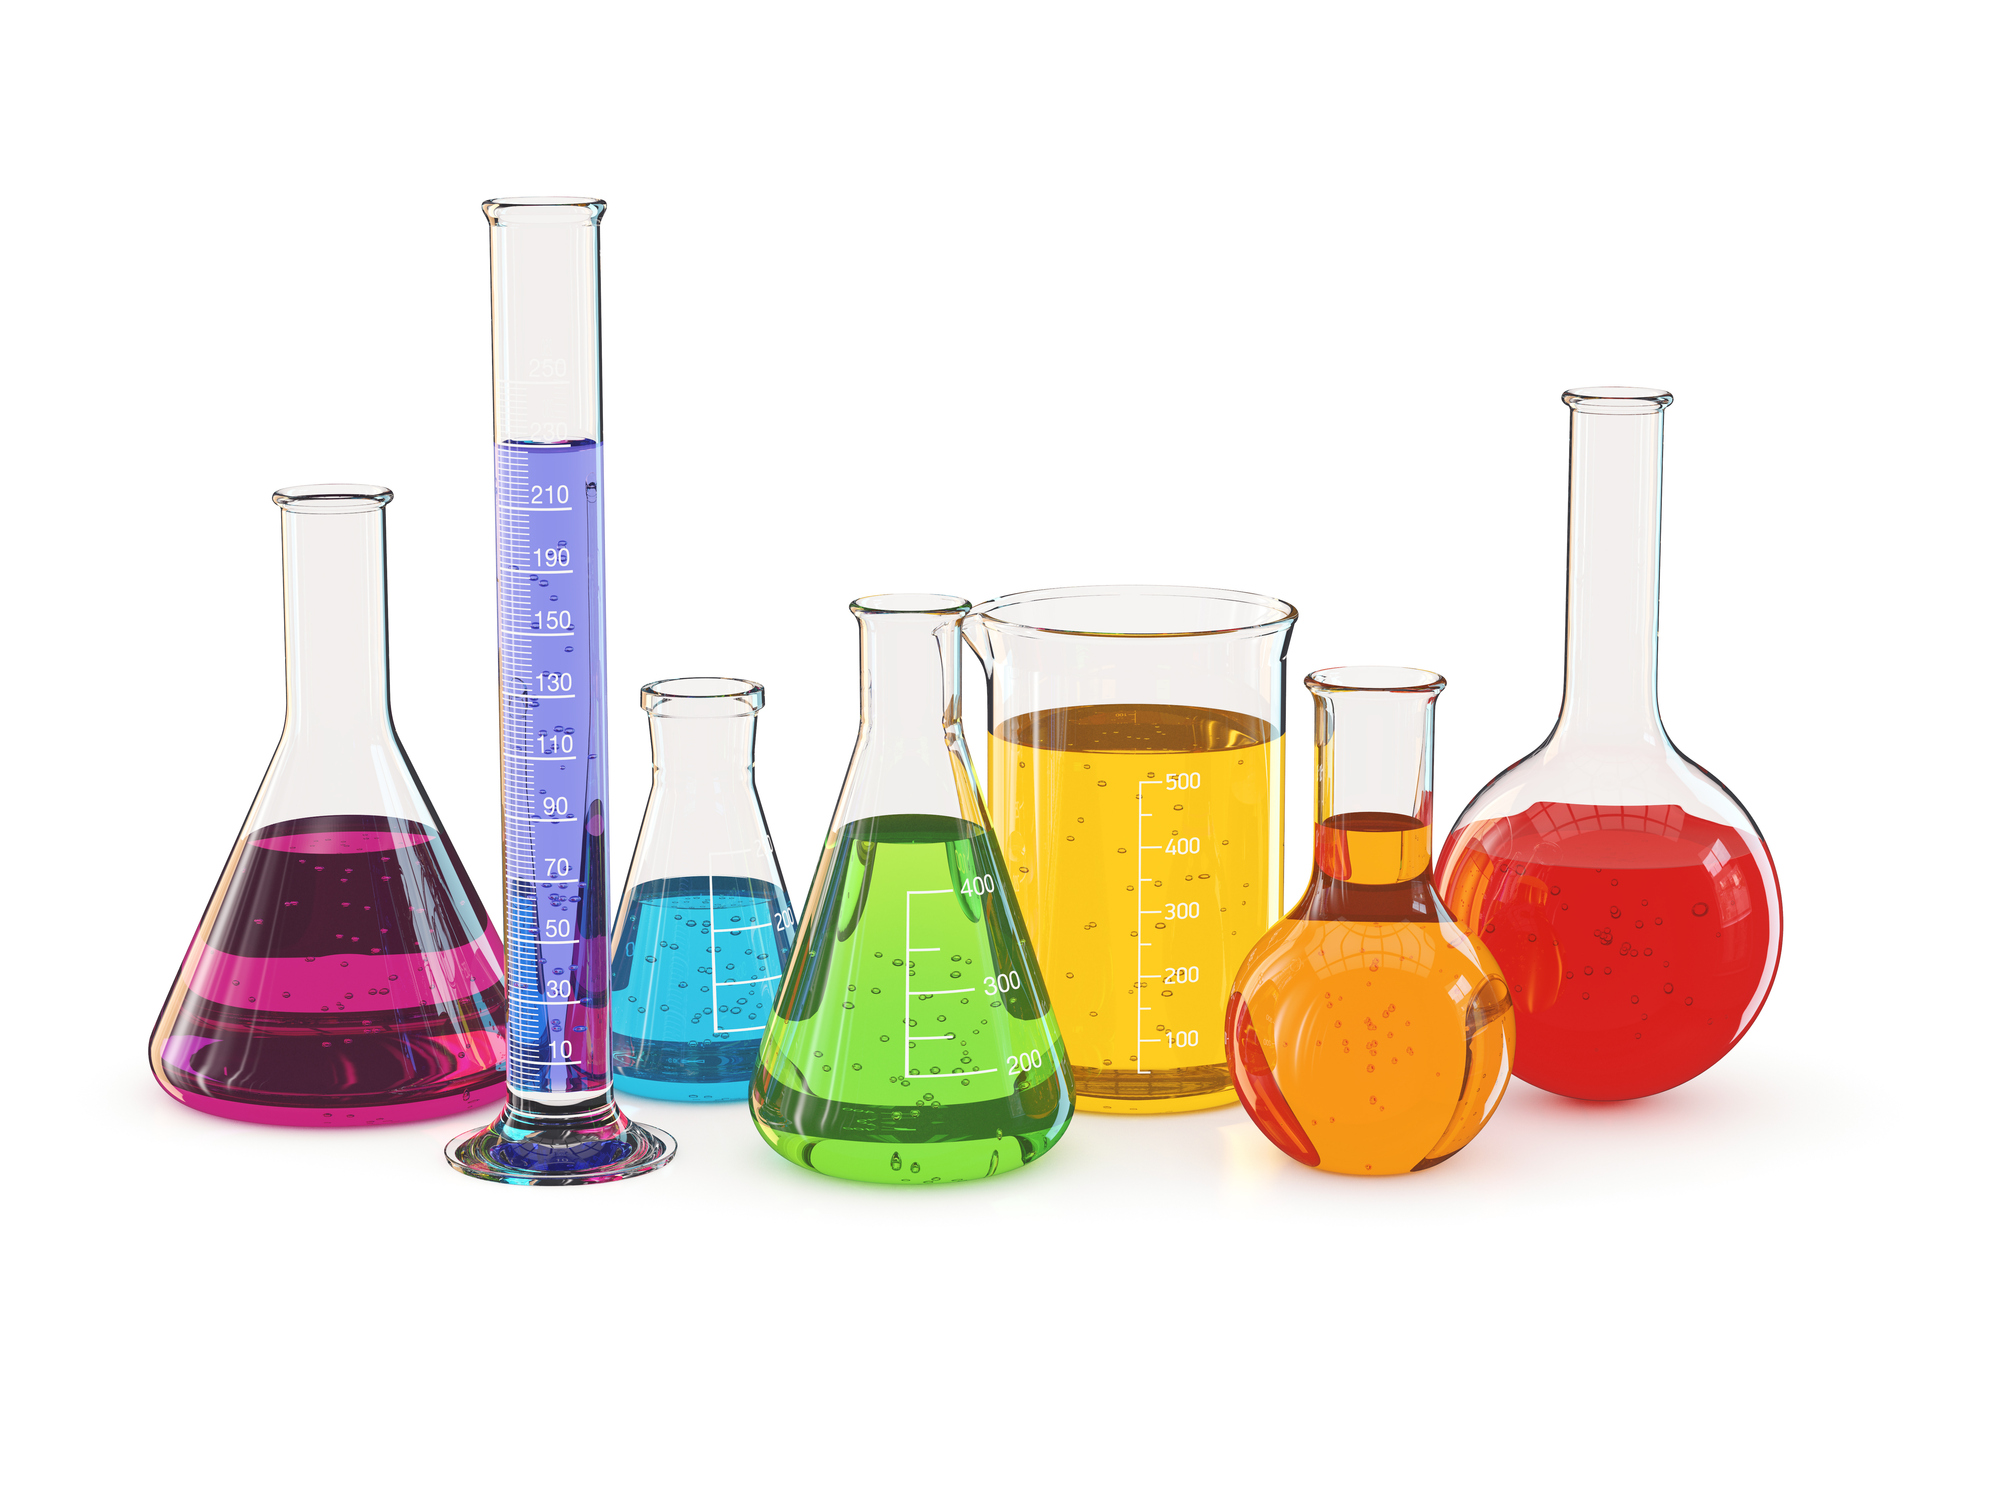 Laboratory glassware with a colorful liquid, isolated on white background. Image credit: VVCephei, iStock